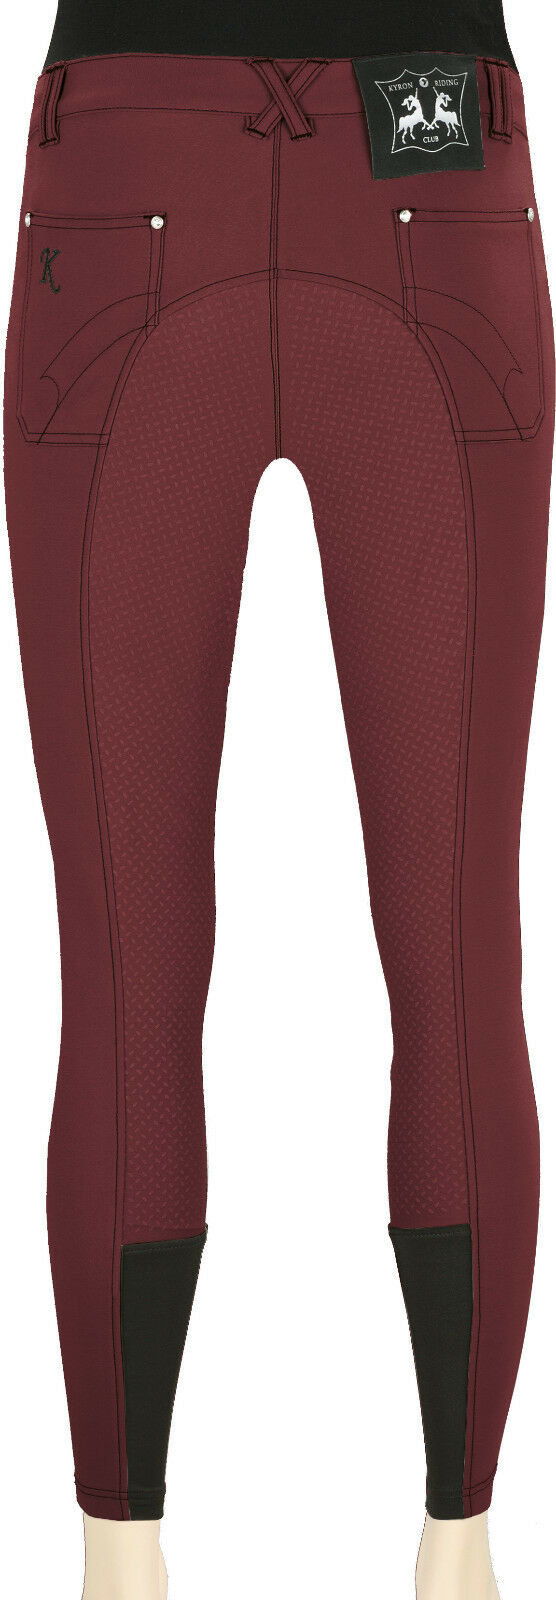 KYRON Women Equestrian Pants Soft Grip, Full Seat, Berry Size 34-84